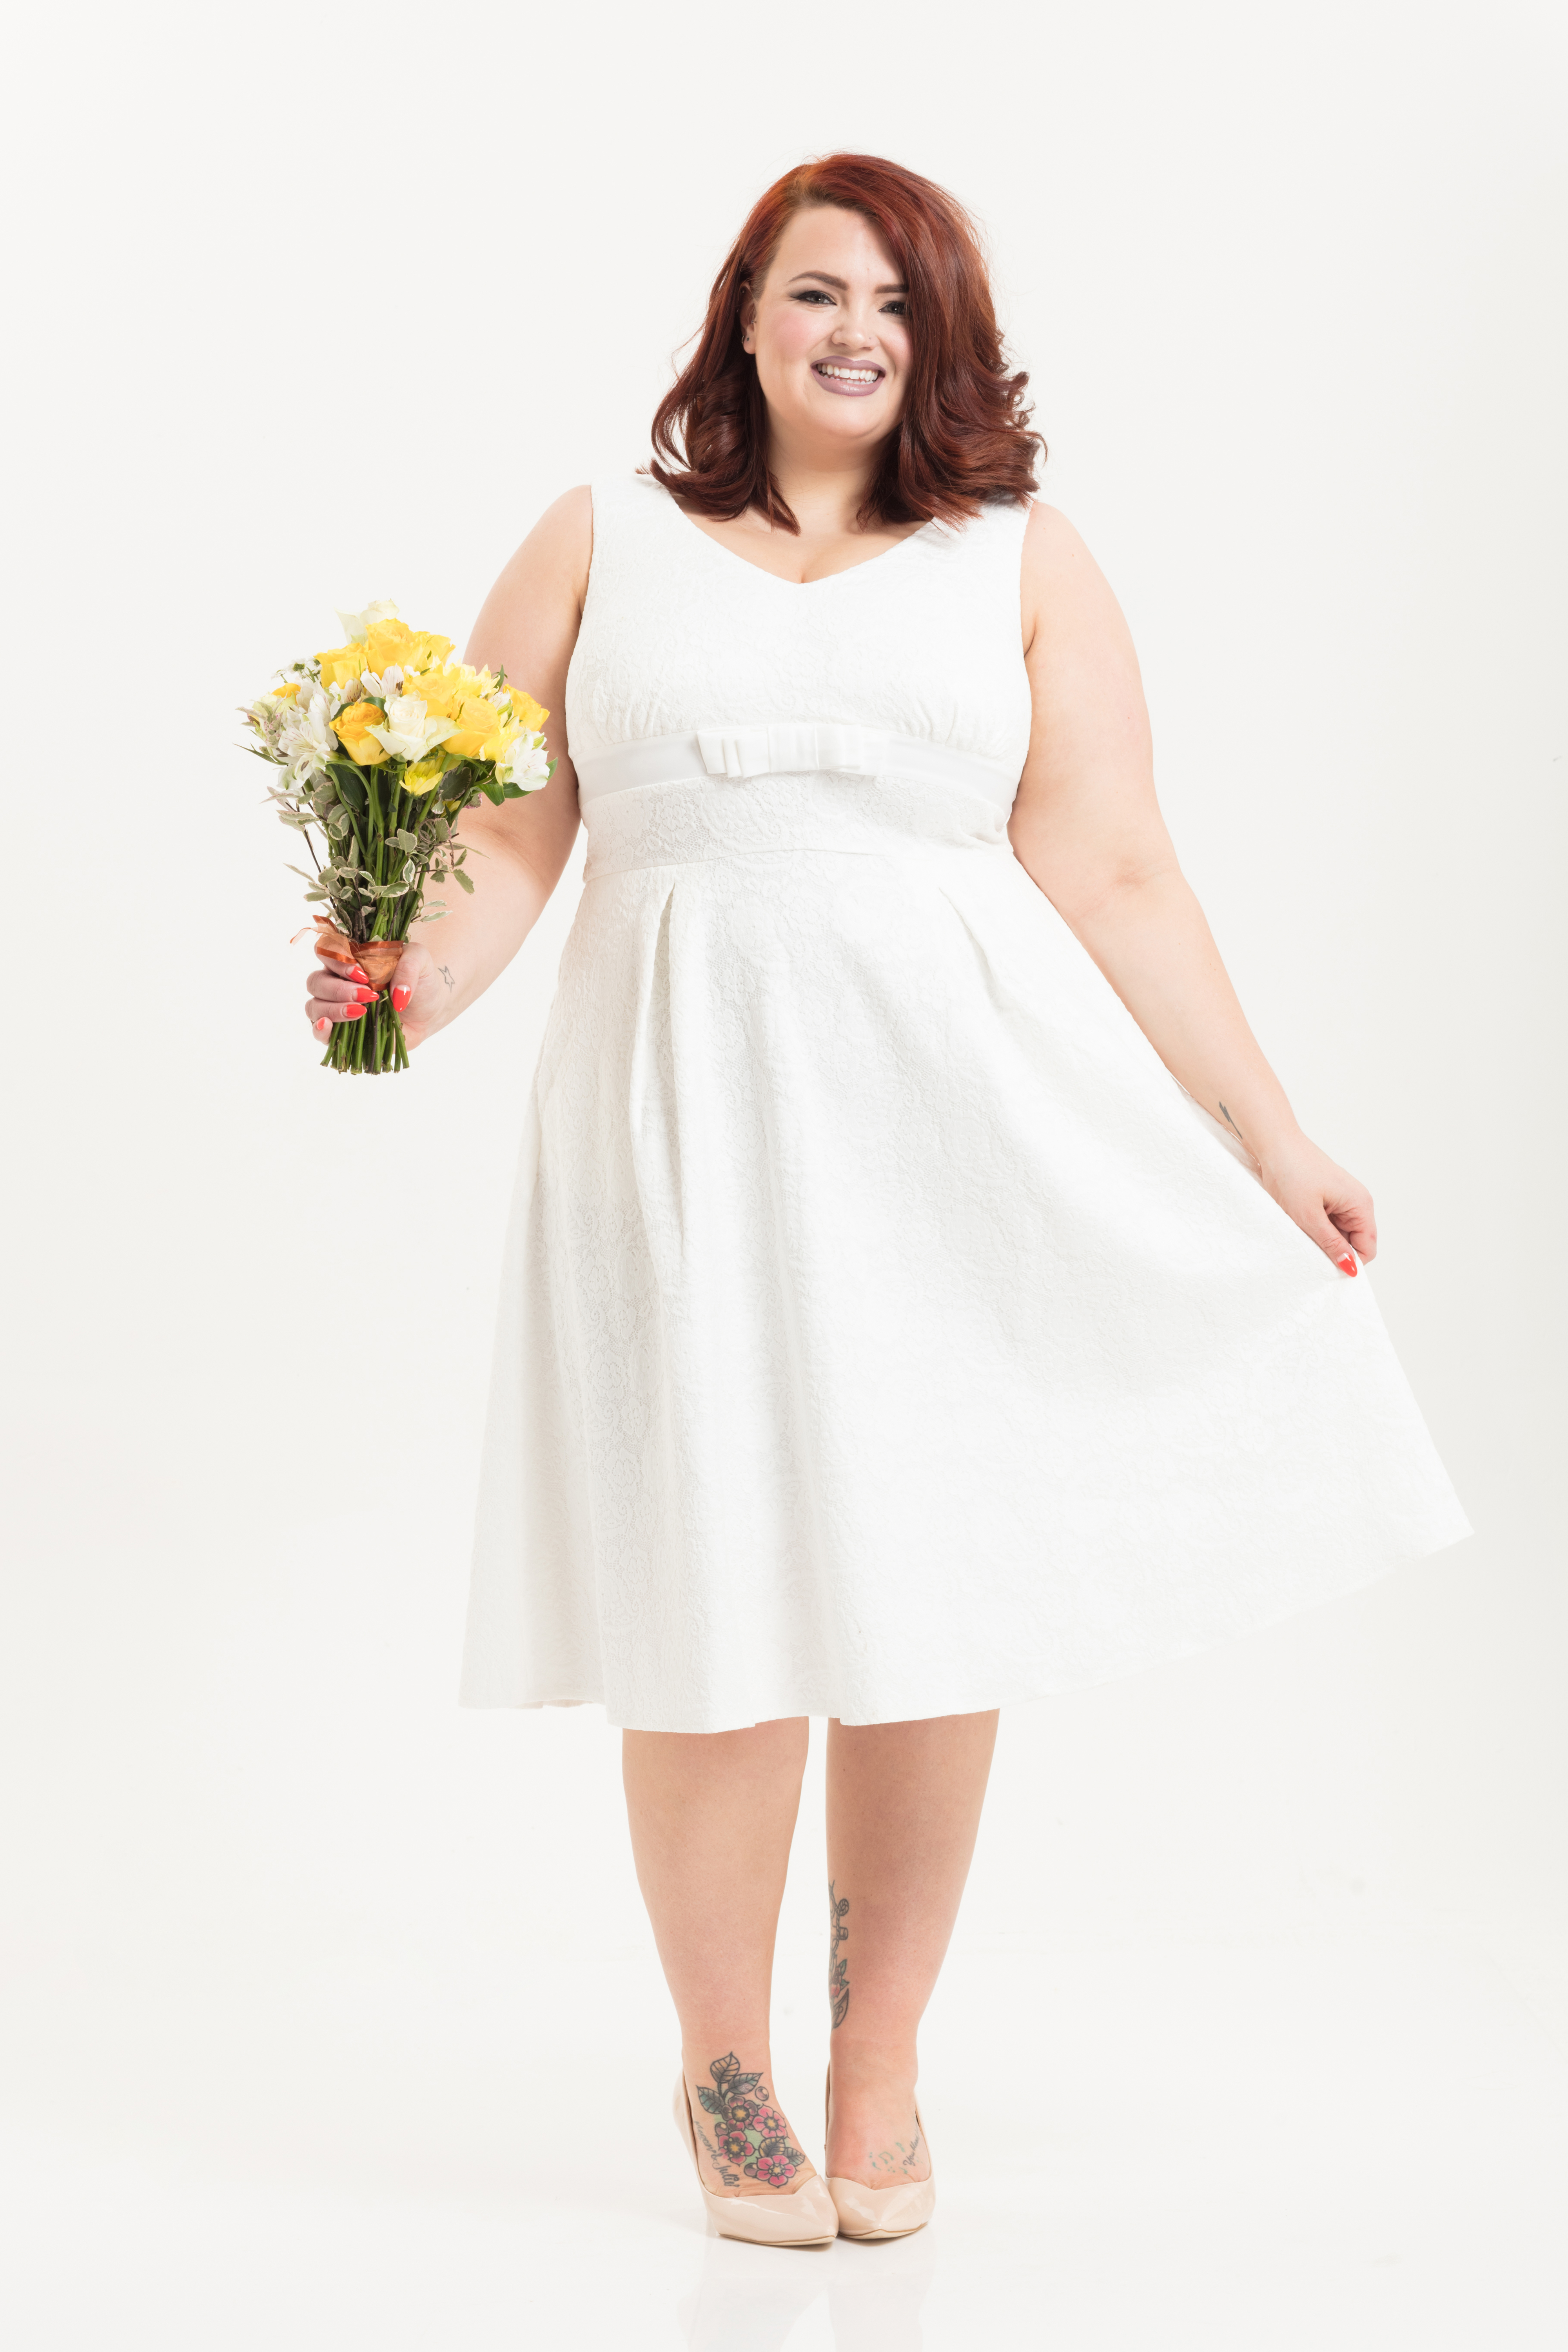 Monroe Bridal Plus Size Dress